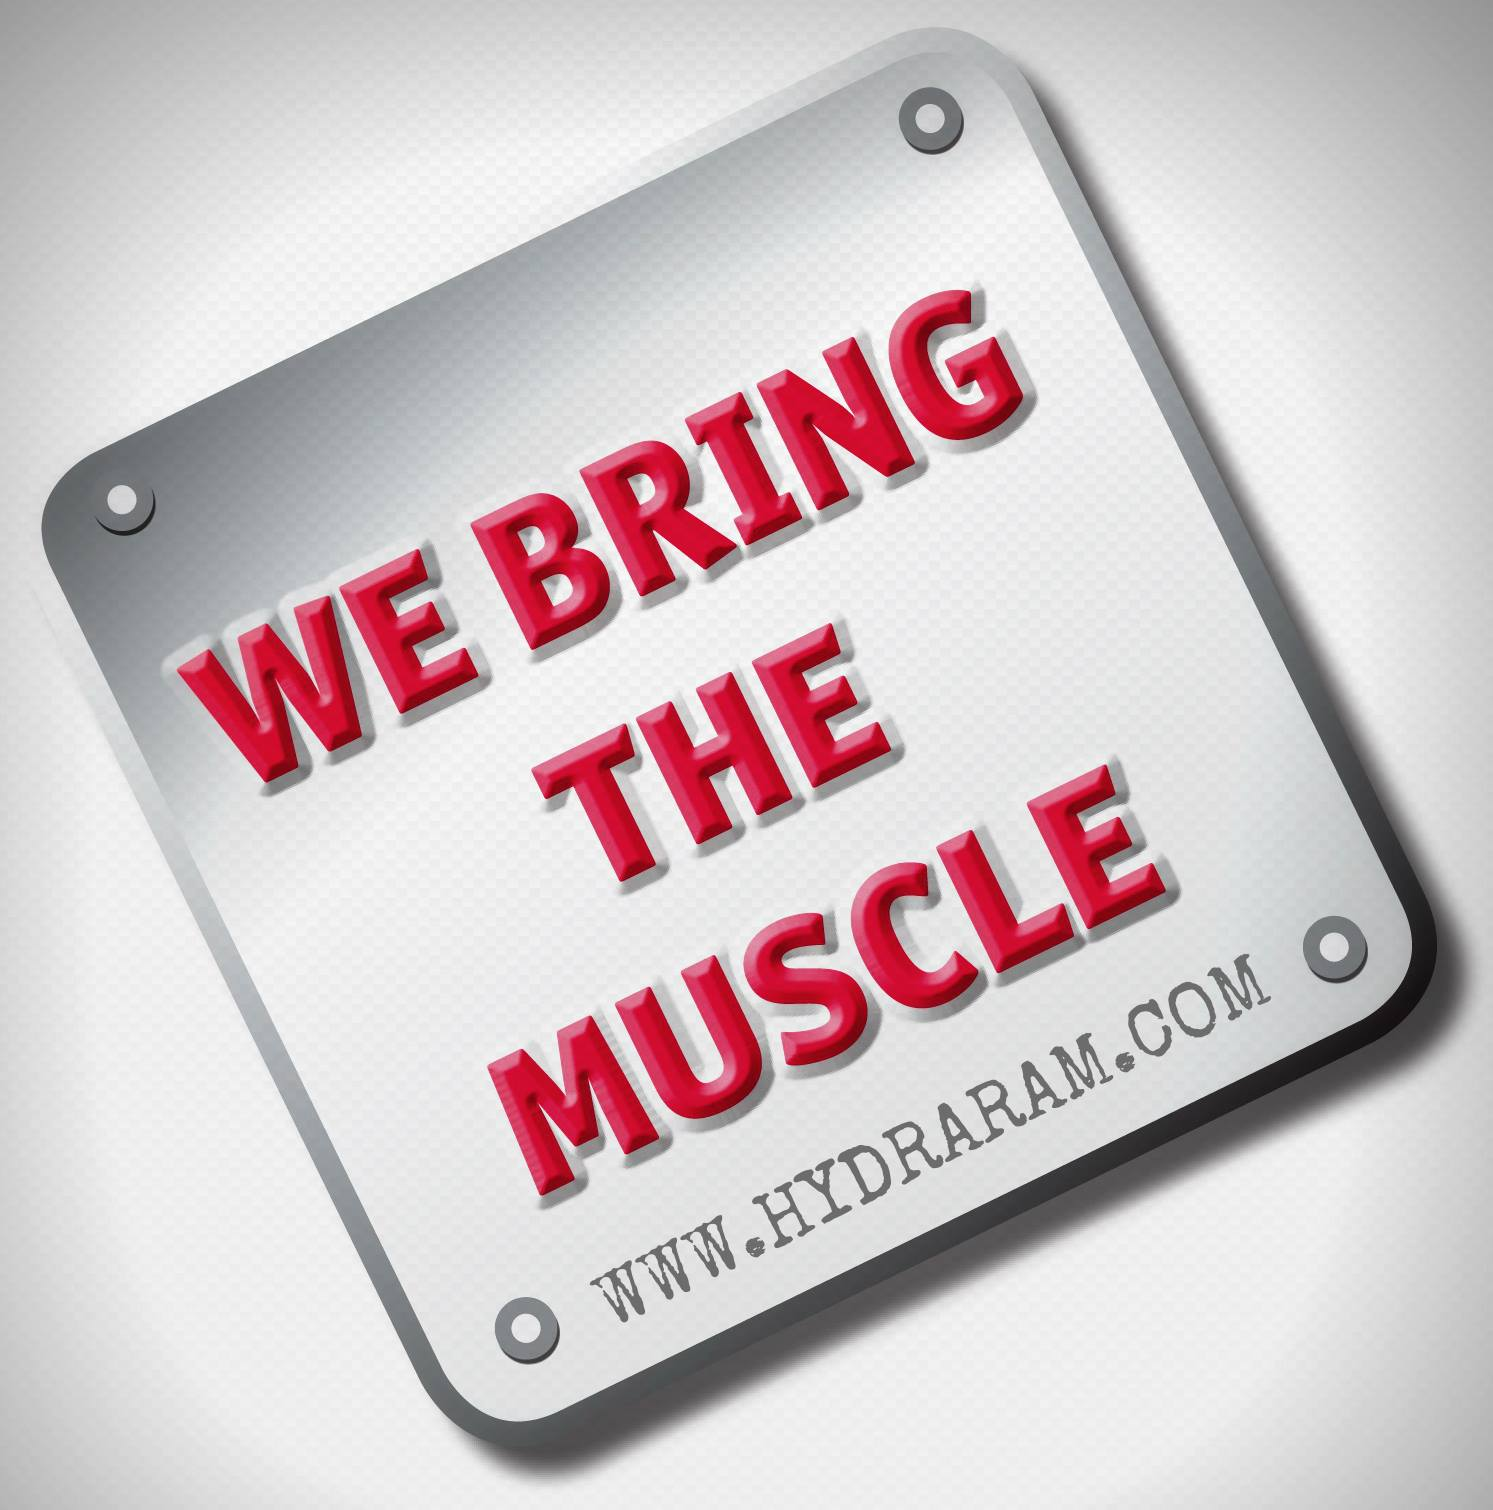 We Bring The Muscle!